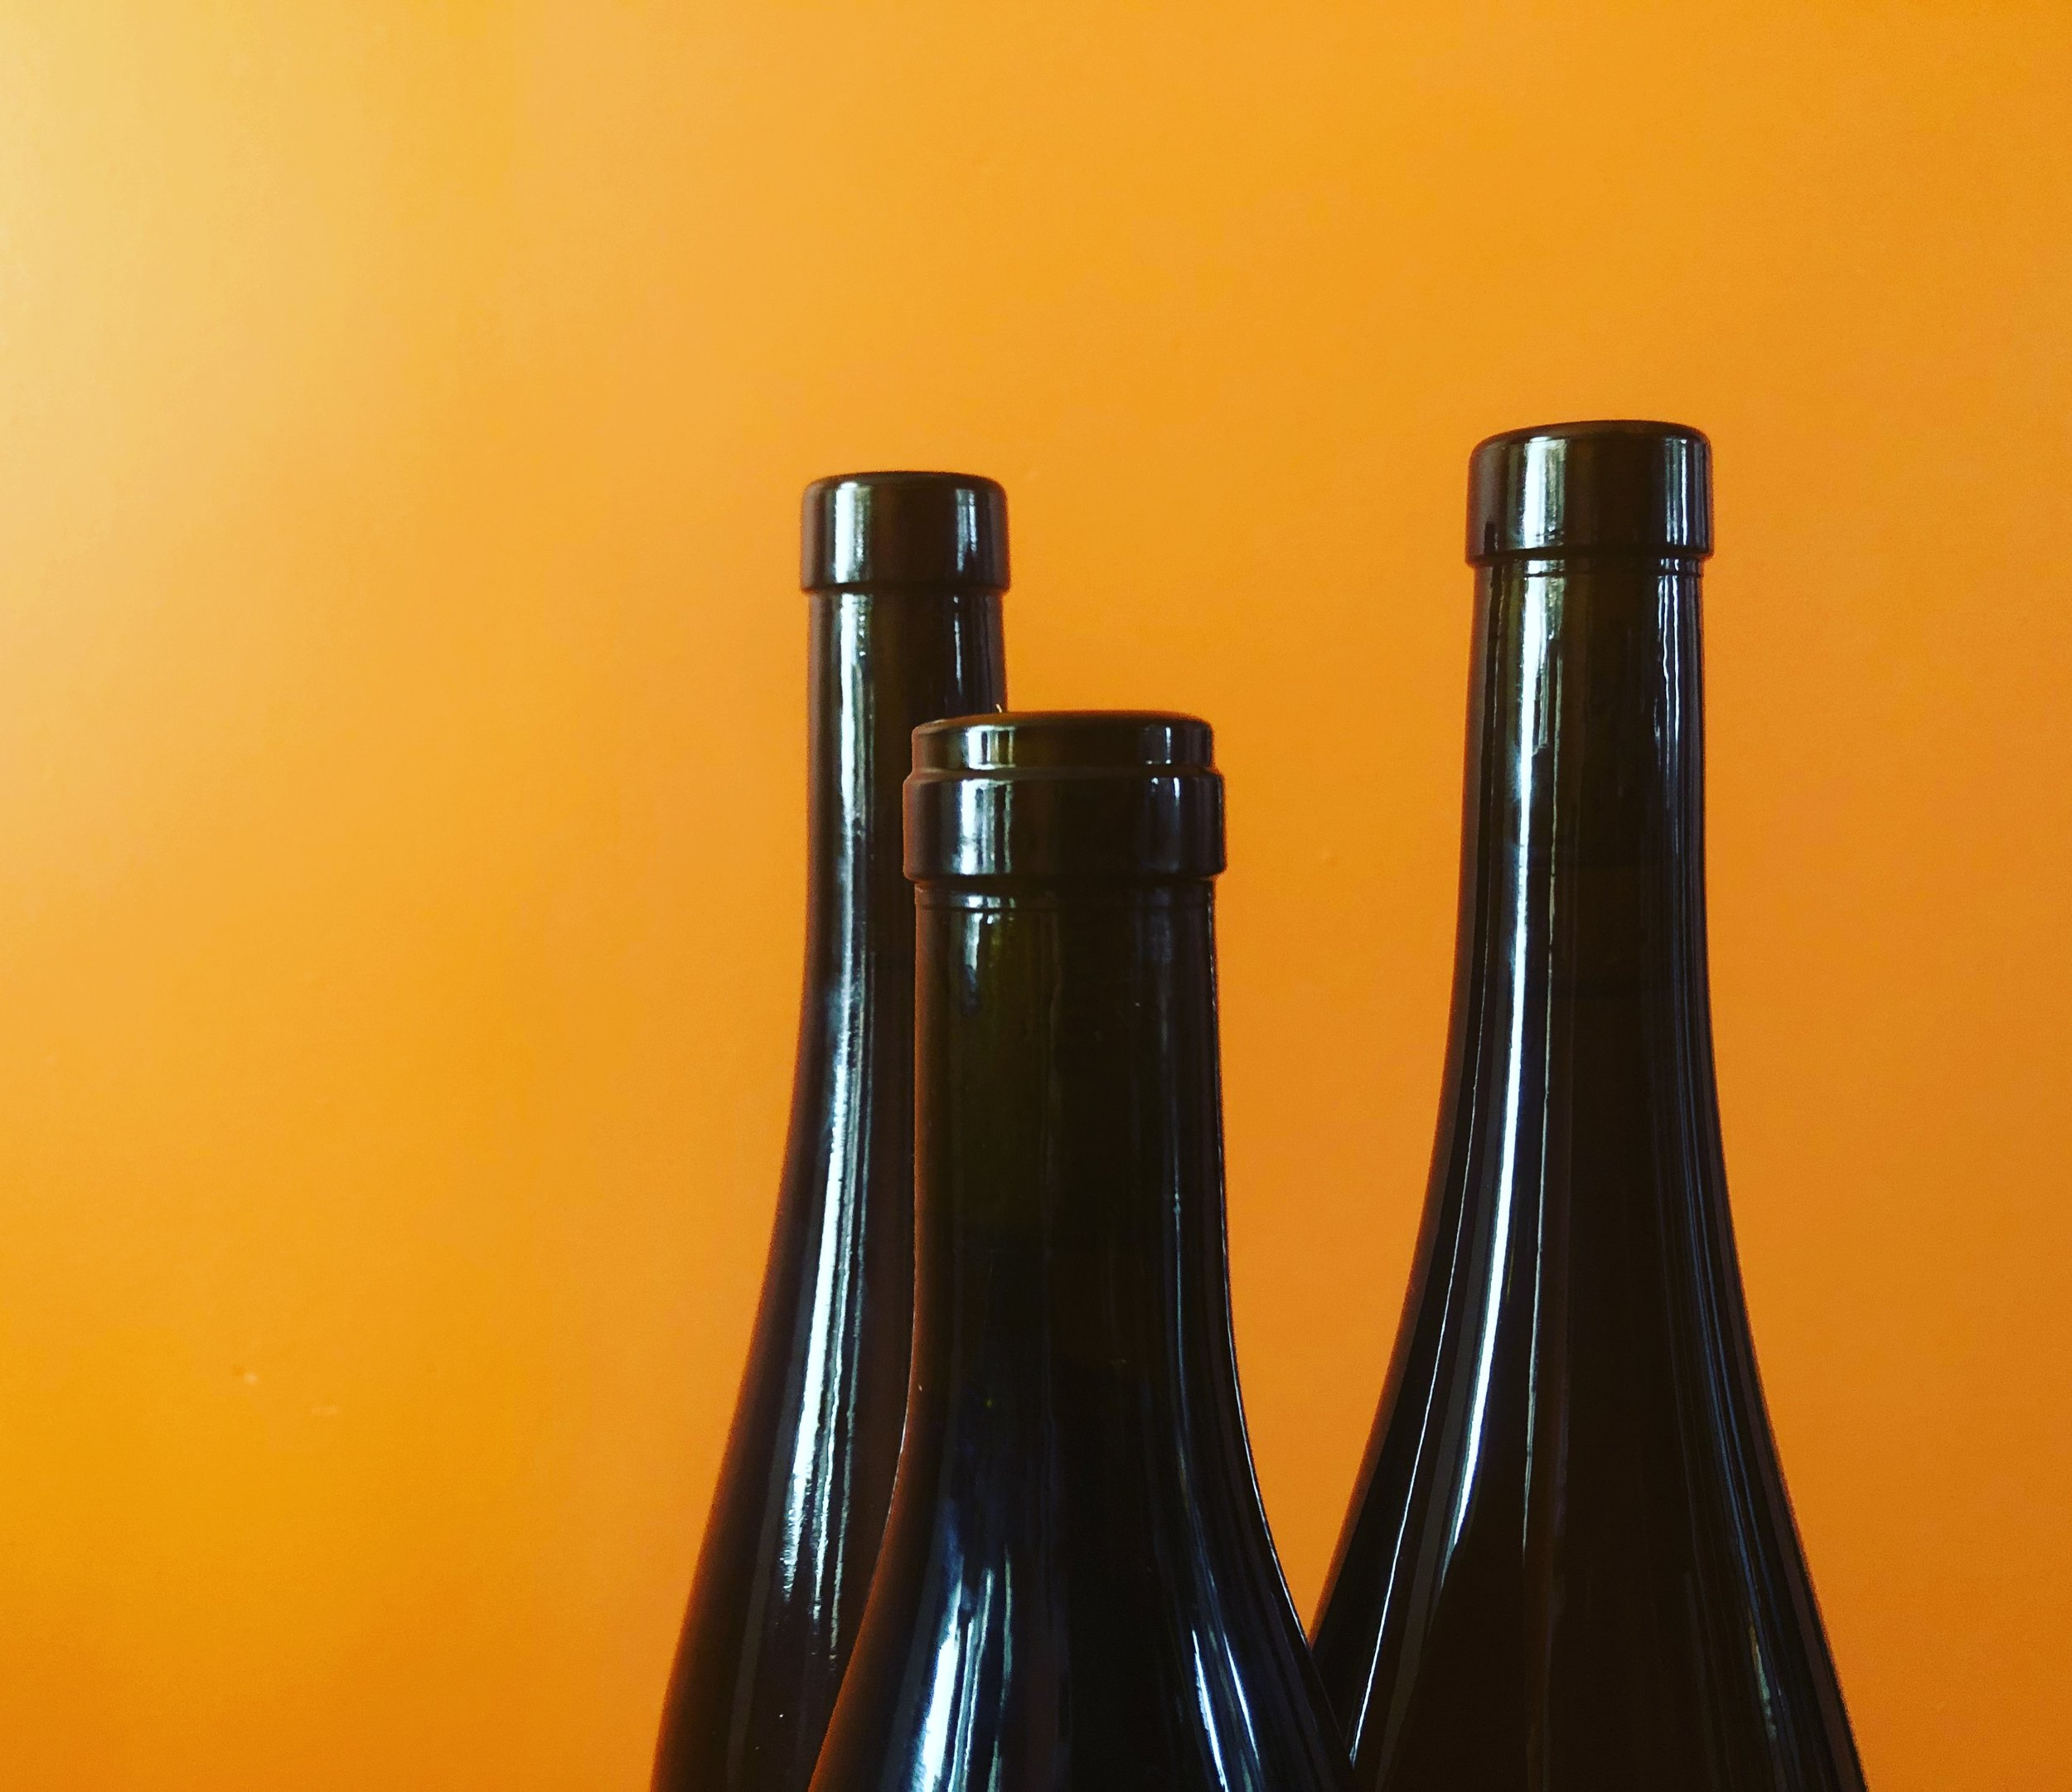 Naked Bottles Forge Cellars Riesling and Pinot Noir